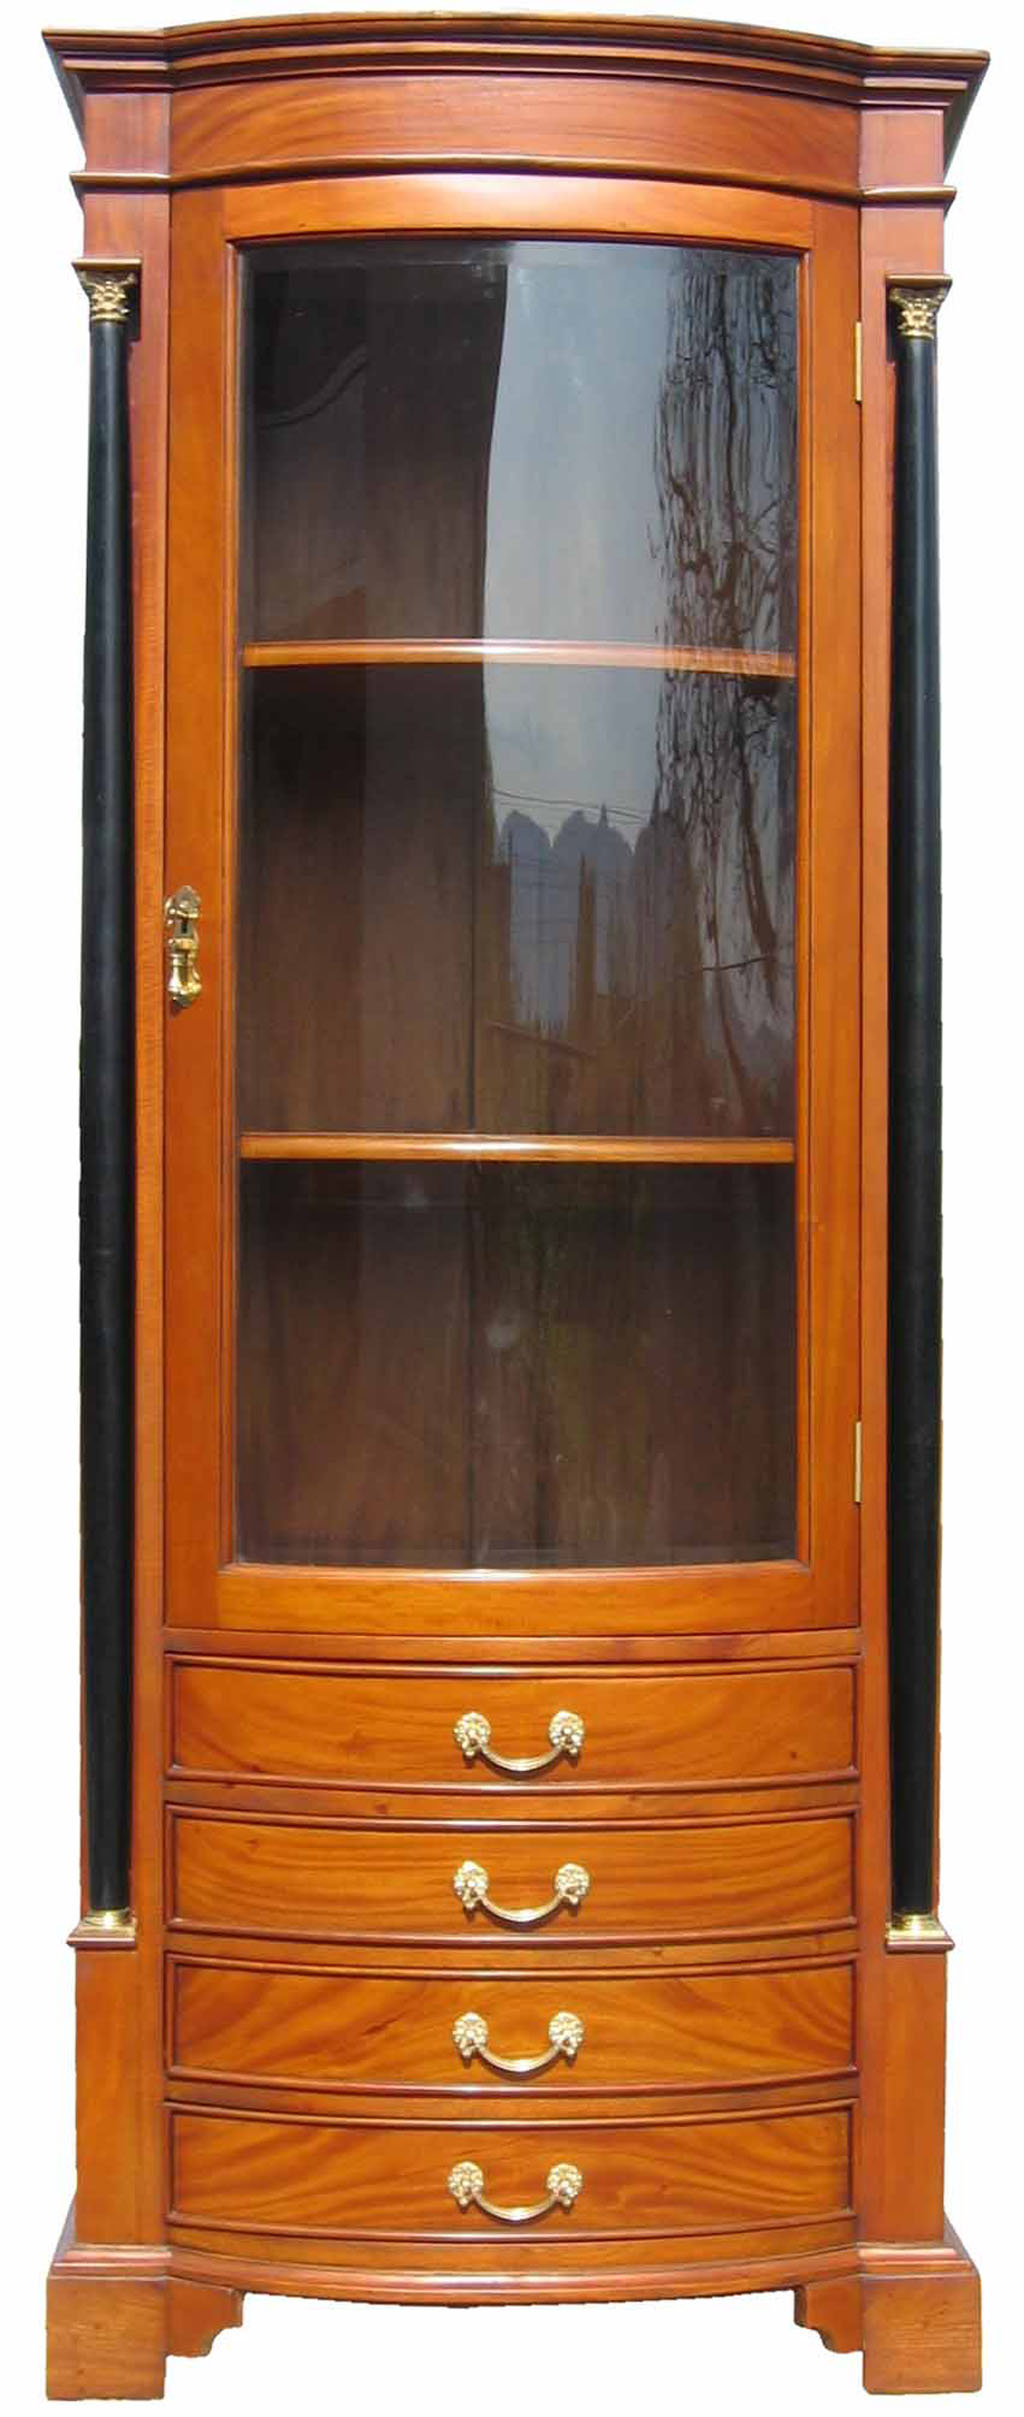 Regal Tisch Kombination Vitrine Biedermeier Antik | Möbel Kirsche Massiv